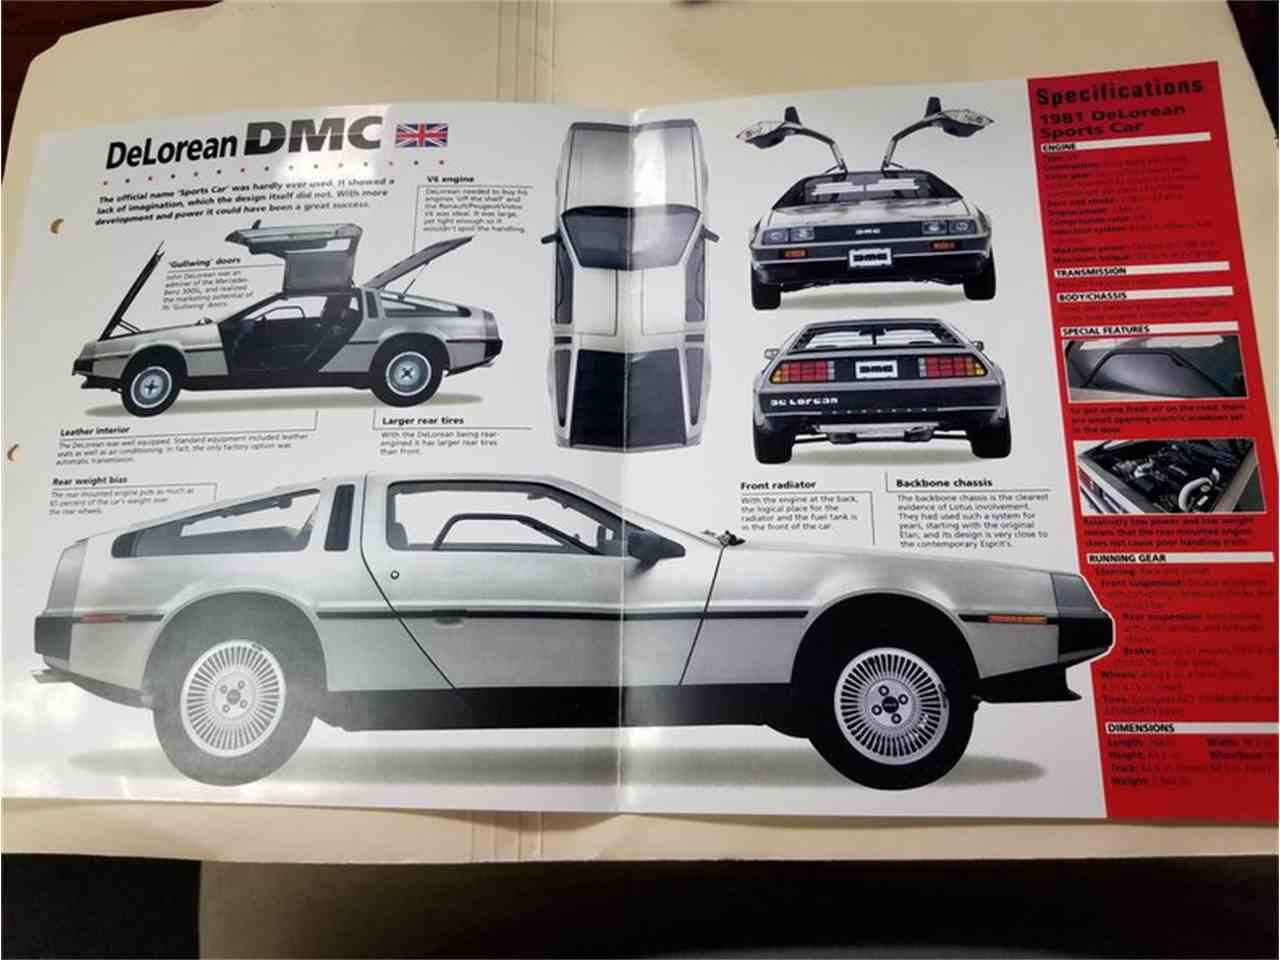 Large Picture of 1981 DeLorean DMC-12 located in Lithia Springs Georgia - $49,995.00 Offered by Streetside Classics - Atlanta - MGXM